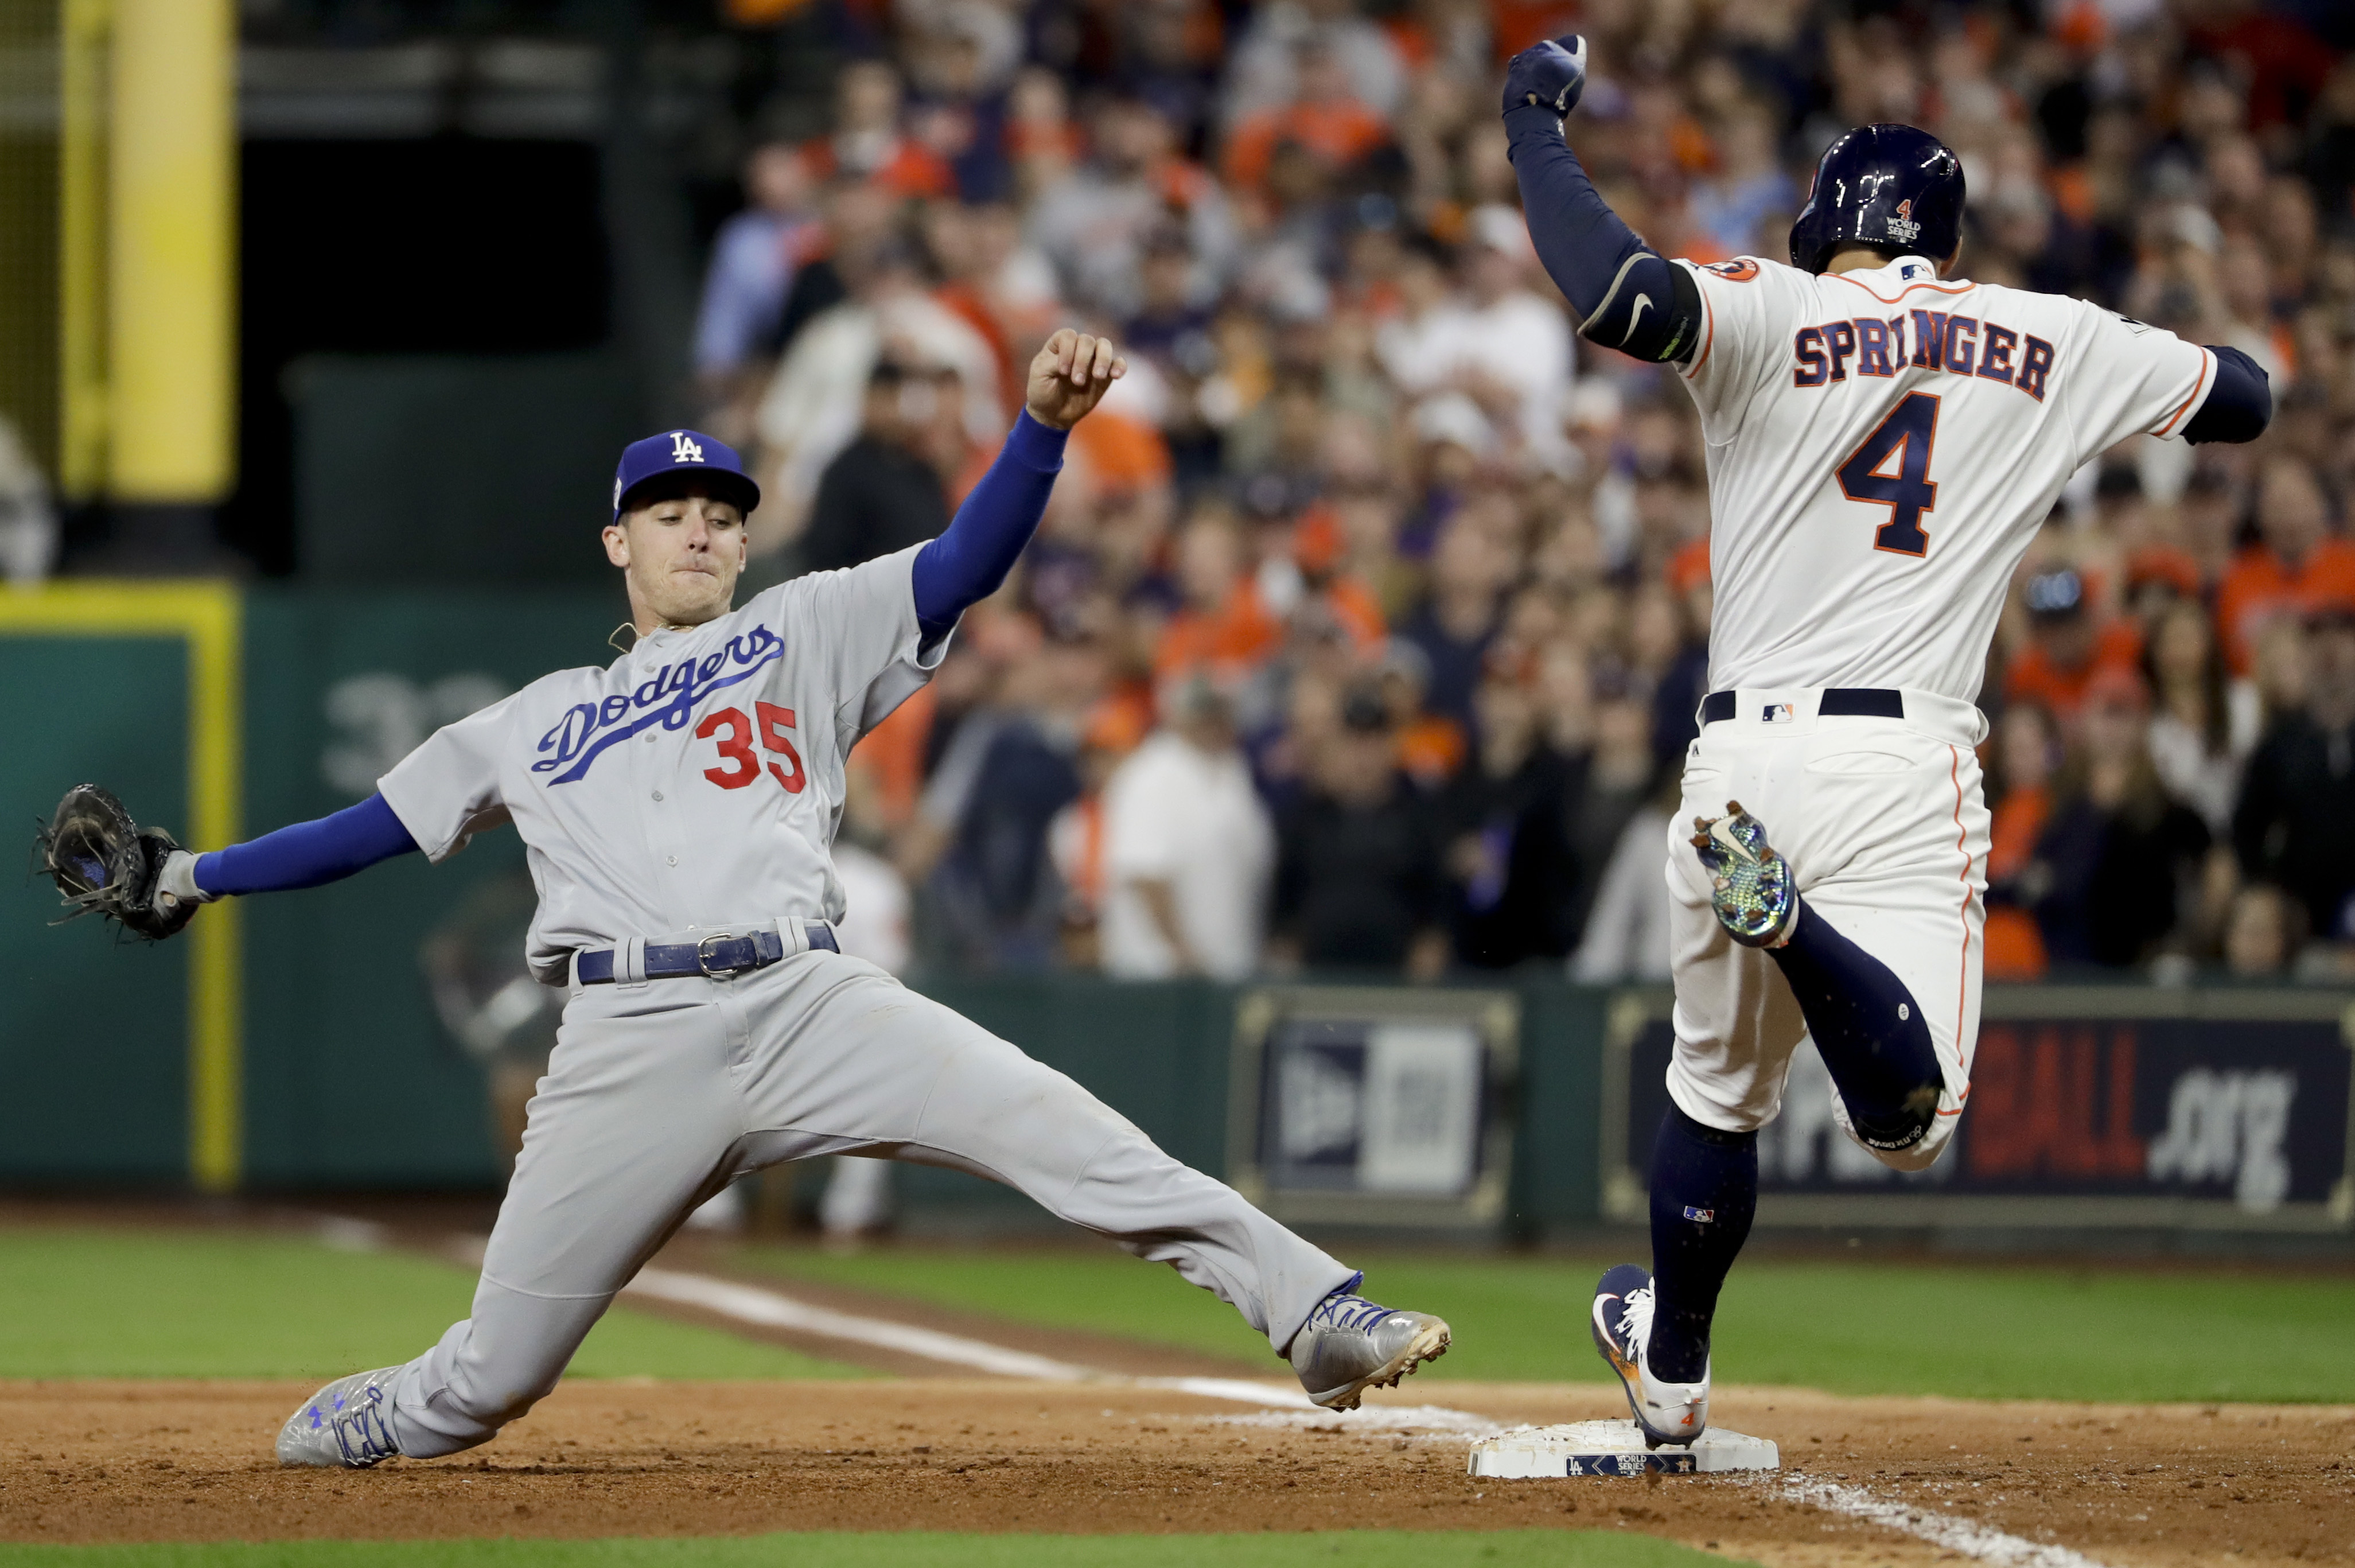 Houston Astros' George Springer beats Los Angeles Dodgers' Cody Bellinger to first base during the sixth inning of Game 3 of baseball's World Series Friday, Oct. 27, 2017, in Houston. (AP Photo/Matt Slocum)